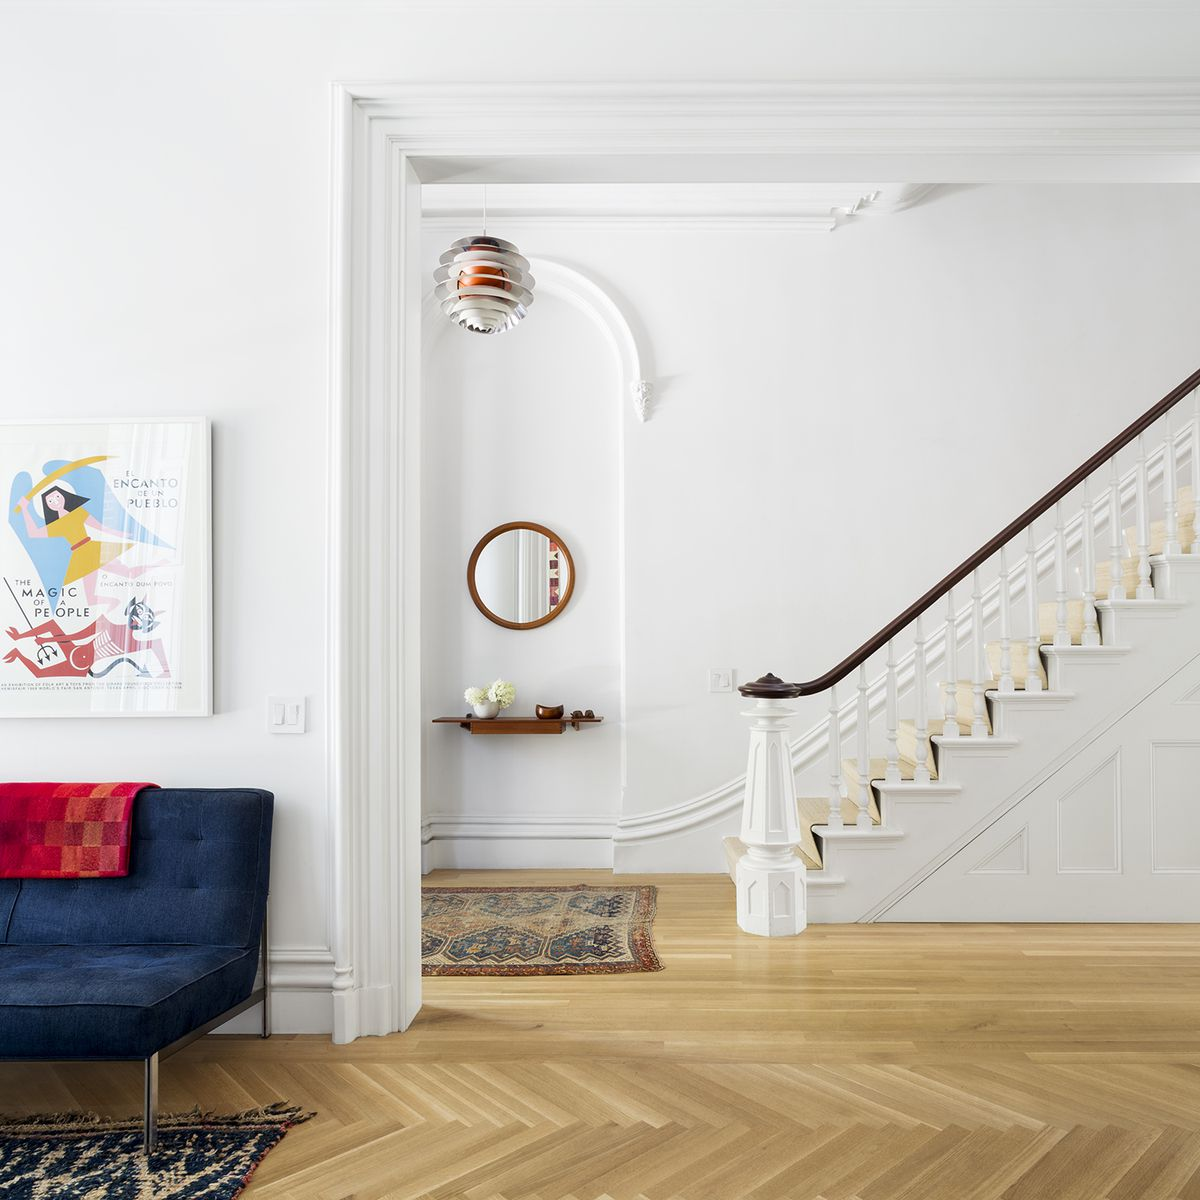 Poul Henningsen's PH Kontrast lamp for Louis Poulsen, now out of production, hangs above an antique mirror and floating shelf by Aksel Kjersgaard in the main entry on the parlor level. The Bucks traded another piece of seating for the Florence Knoll settee.